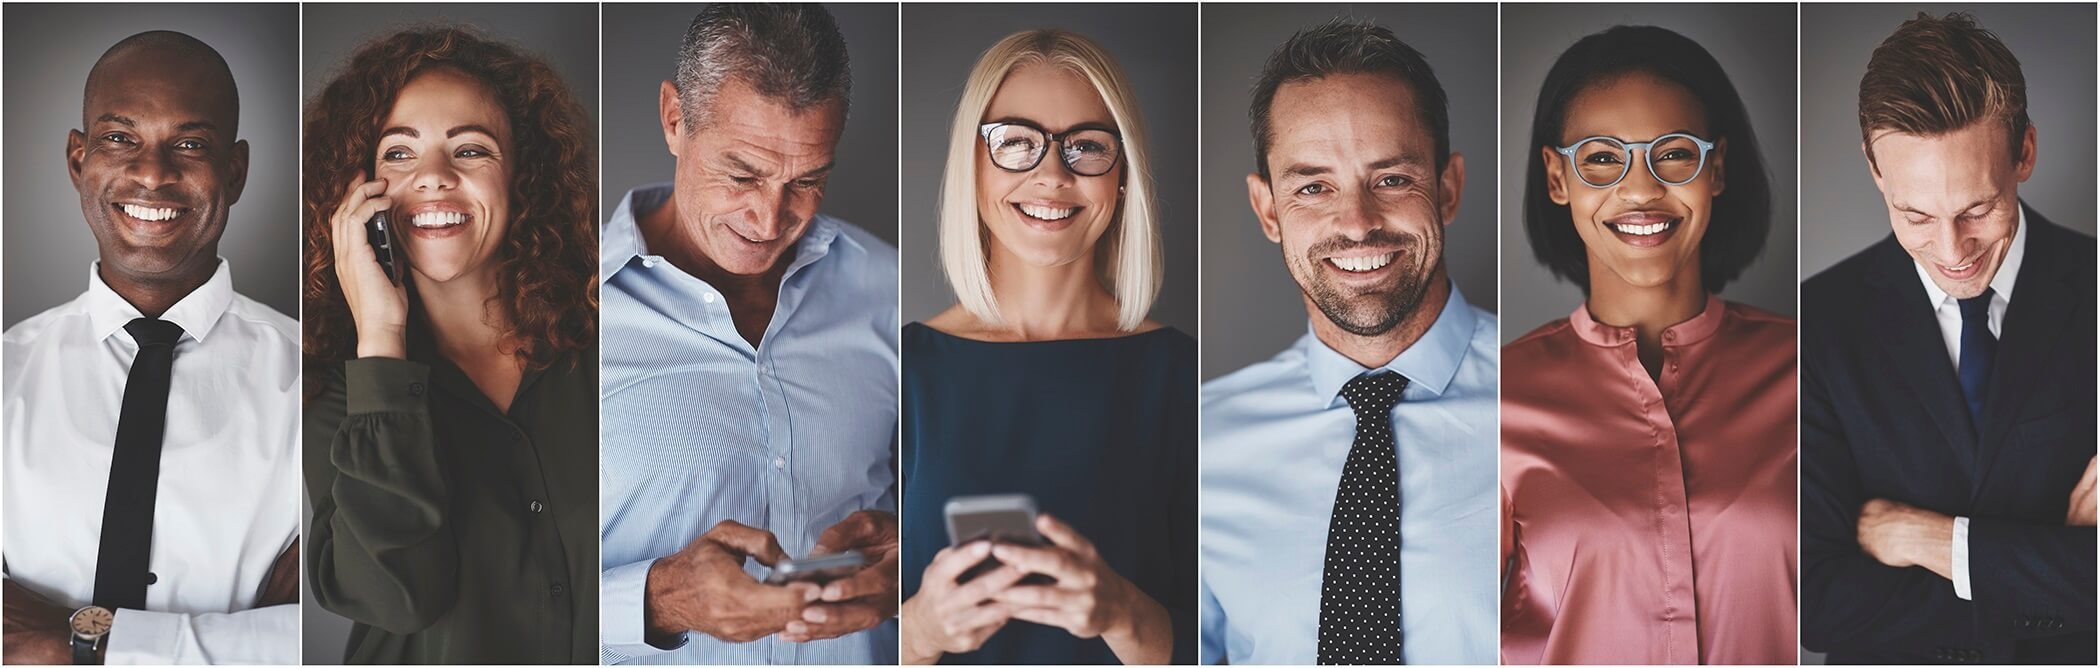 Is your workforce hurting your business? Maybe it's you…. | Newland Associates | Executive Search | Outplacement | Predictive Index Partner | HR Services